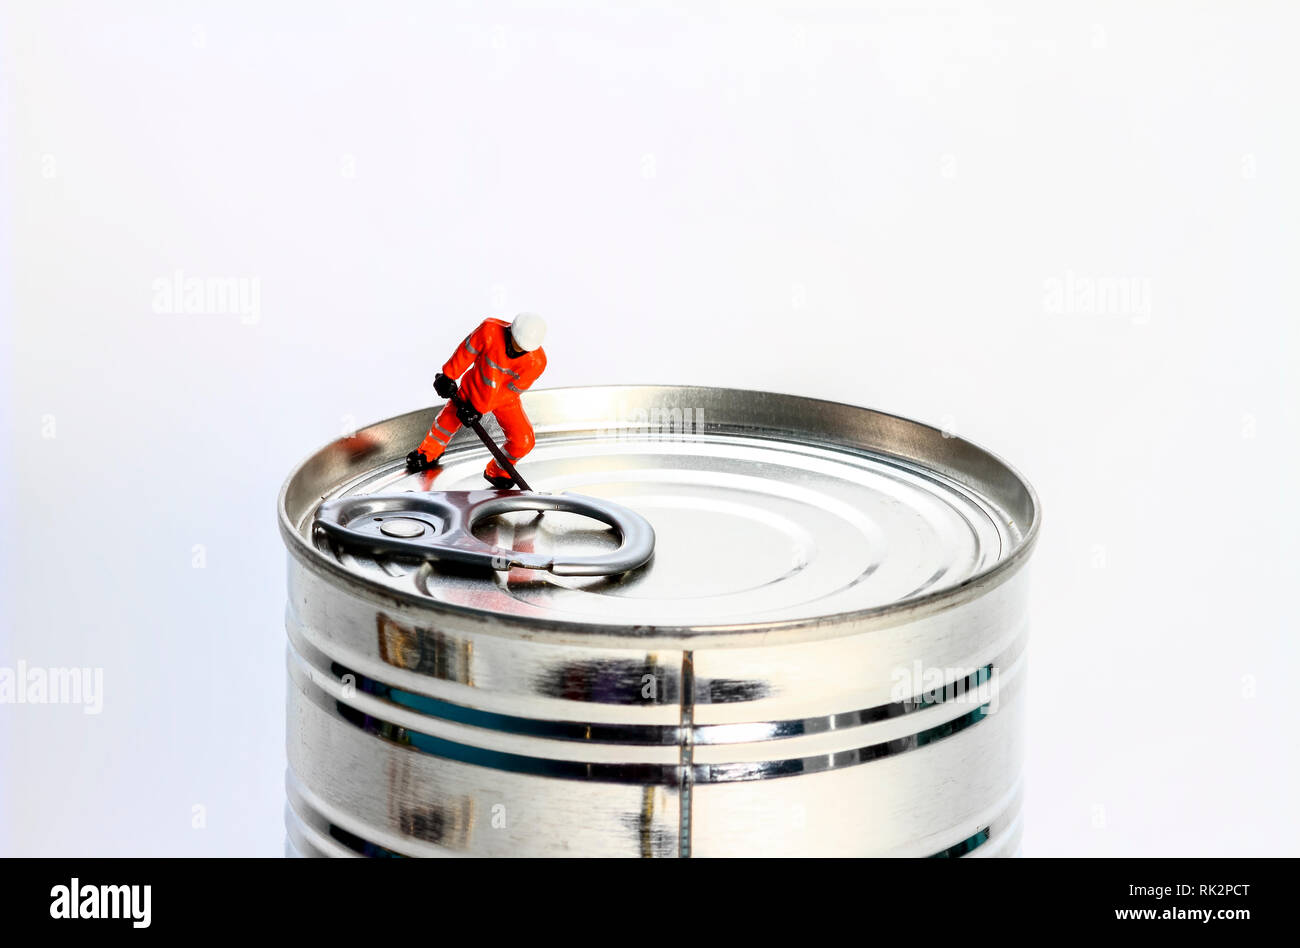 Conceptual diorama image of miniature figure workman trying to open a tin can, - Stock Image